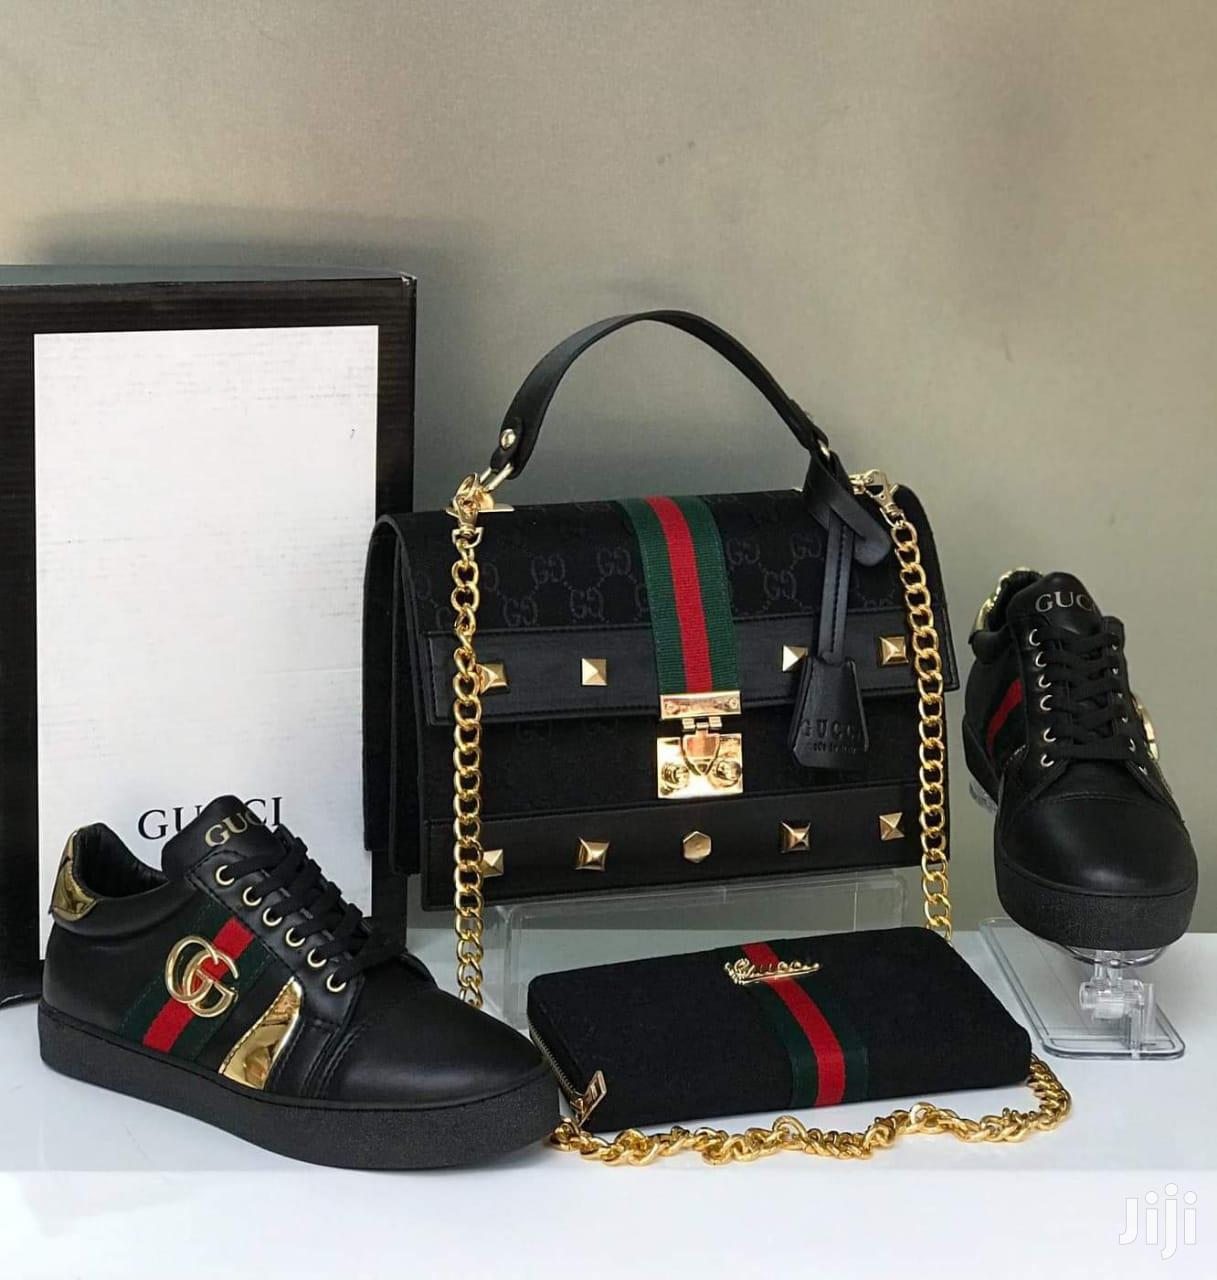 Matching Gucci Bags And Shoes